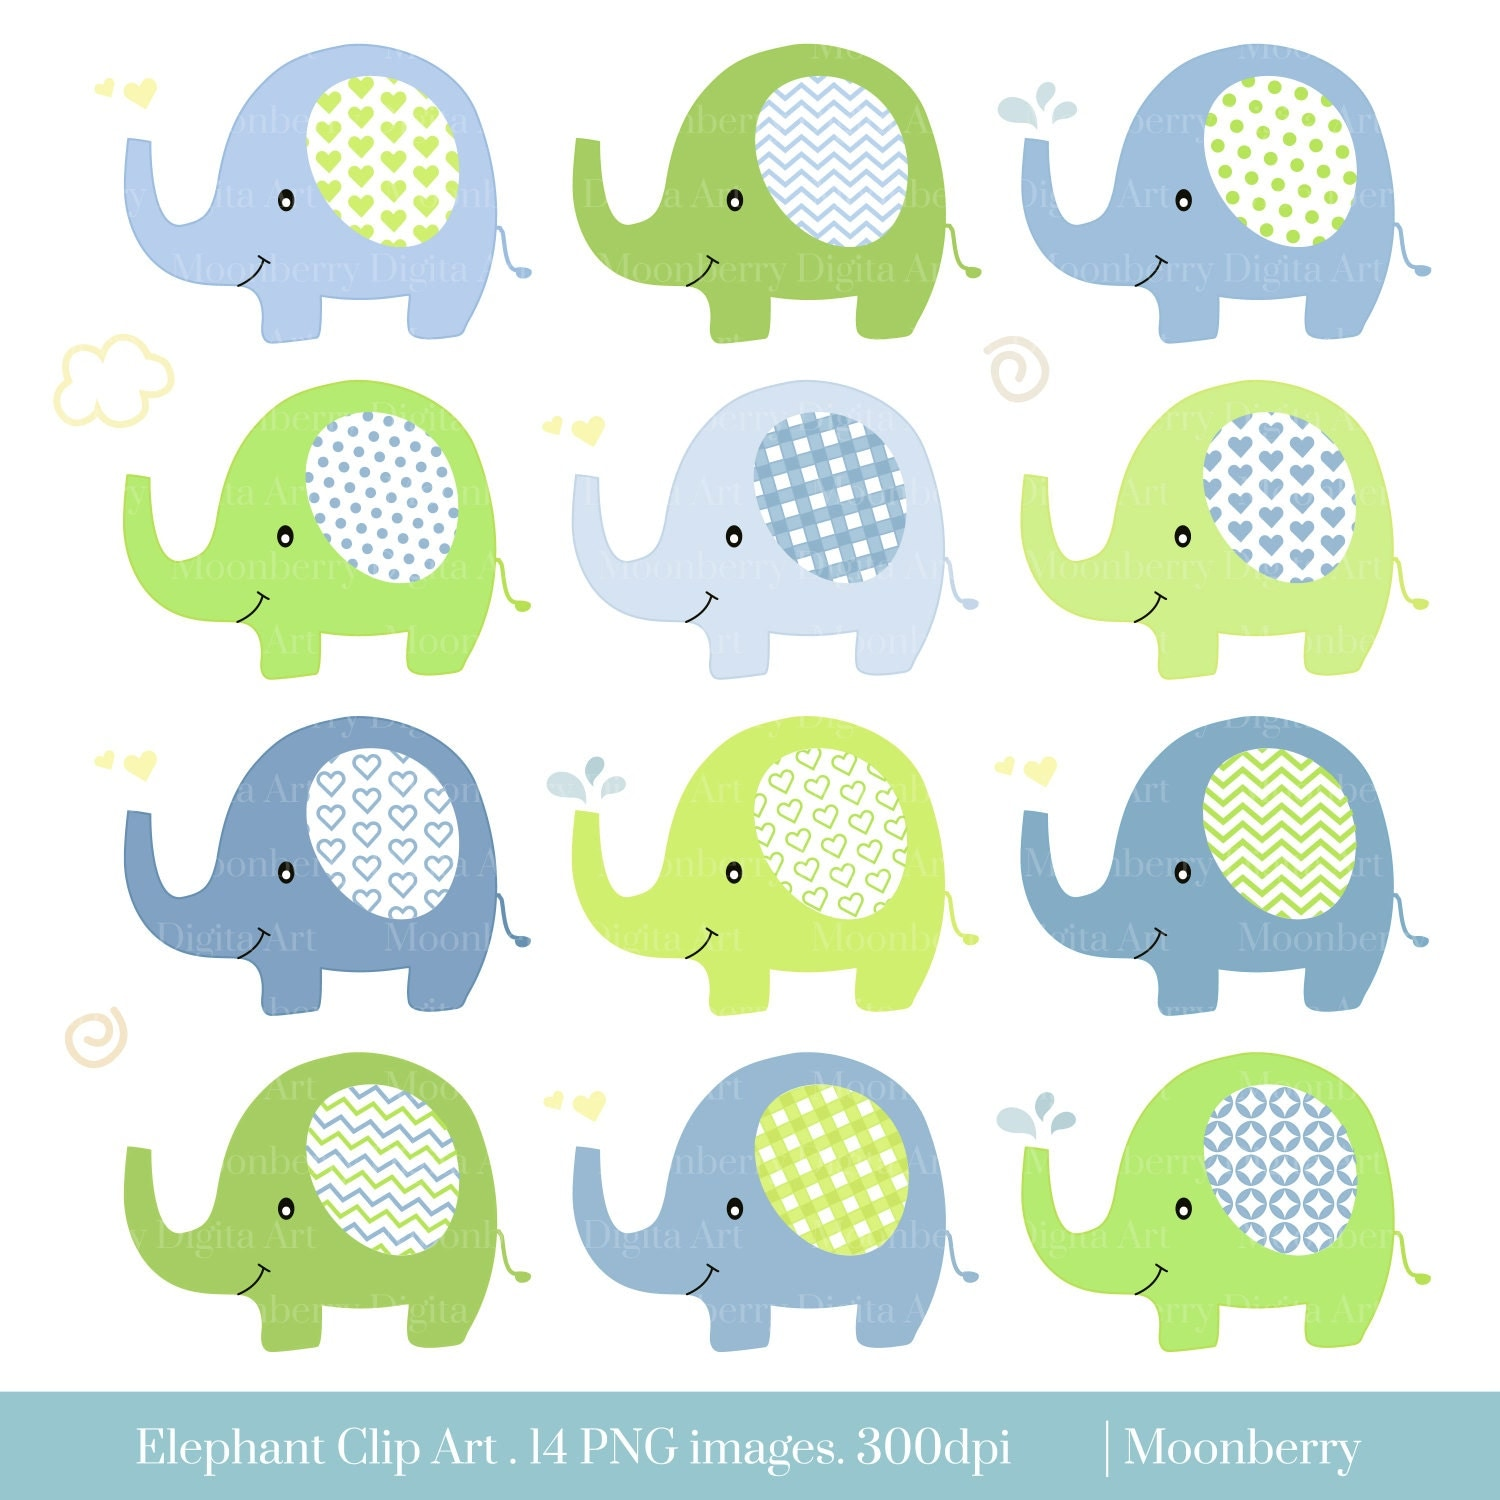 Elephant Clip Art Baby Shower Clipart Nursery Clipart. How To Change A Kitchen Faucet. Kitchen Refinishing. Best Kitchen Thermometer. Kitchener. Wallpaper Borders For Kitchen. Best Camp Kitchen. Kitchen Faucet Bronze. Kitchen Dining Room Ideas